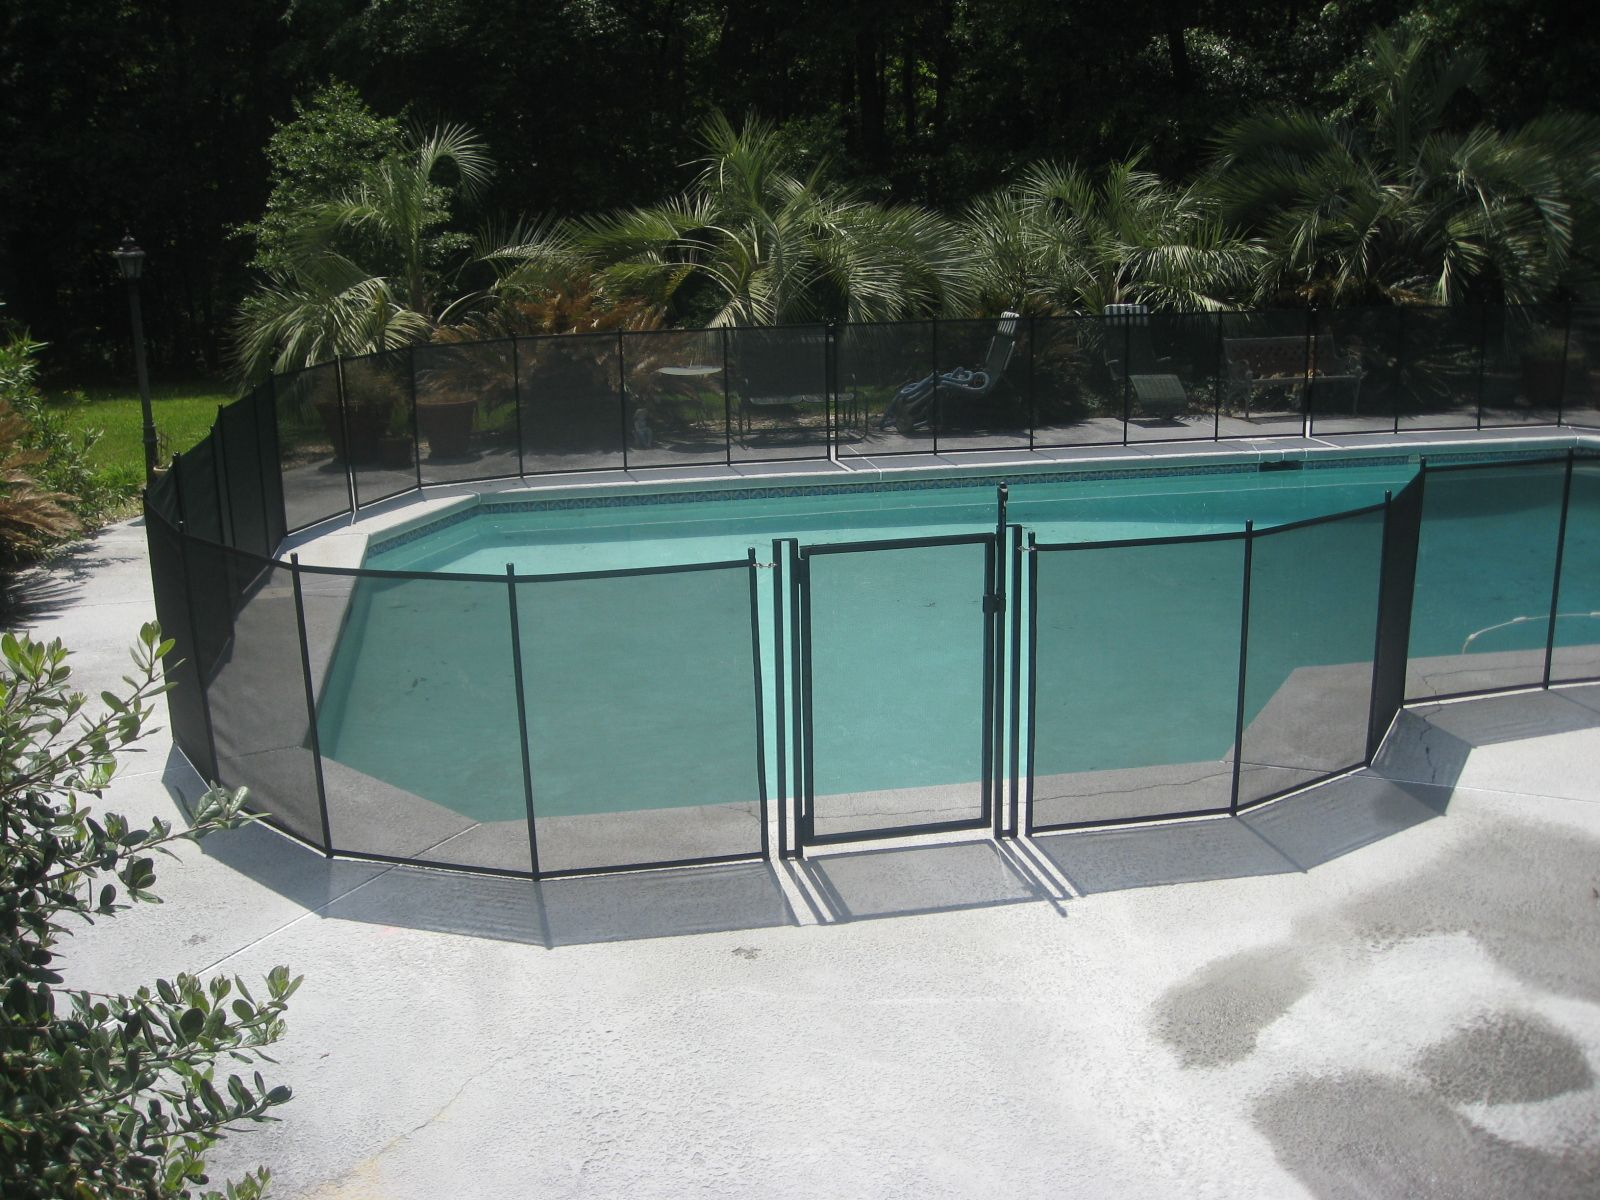 Self Closing Self Latching Gate Life Saver Pool Fence Systems Pool Fence Pool Fence Cost Fence Prices